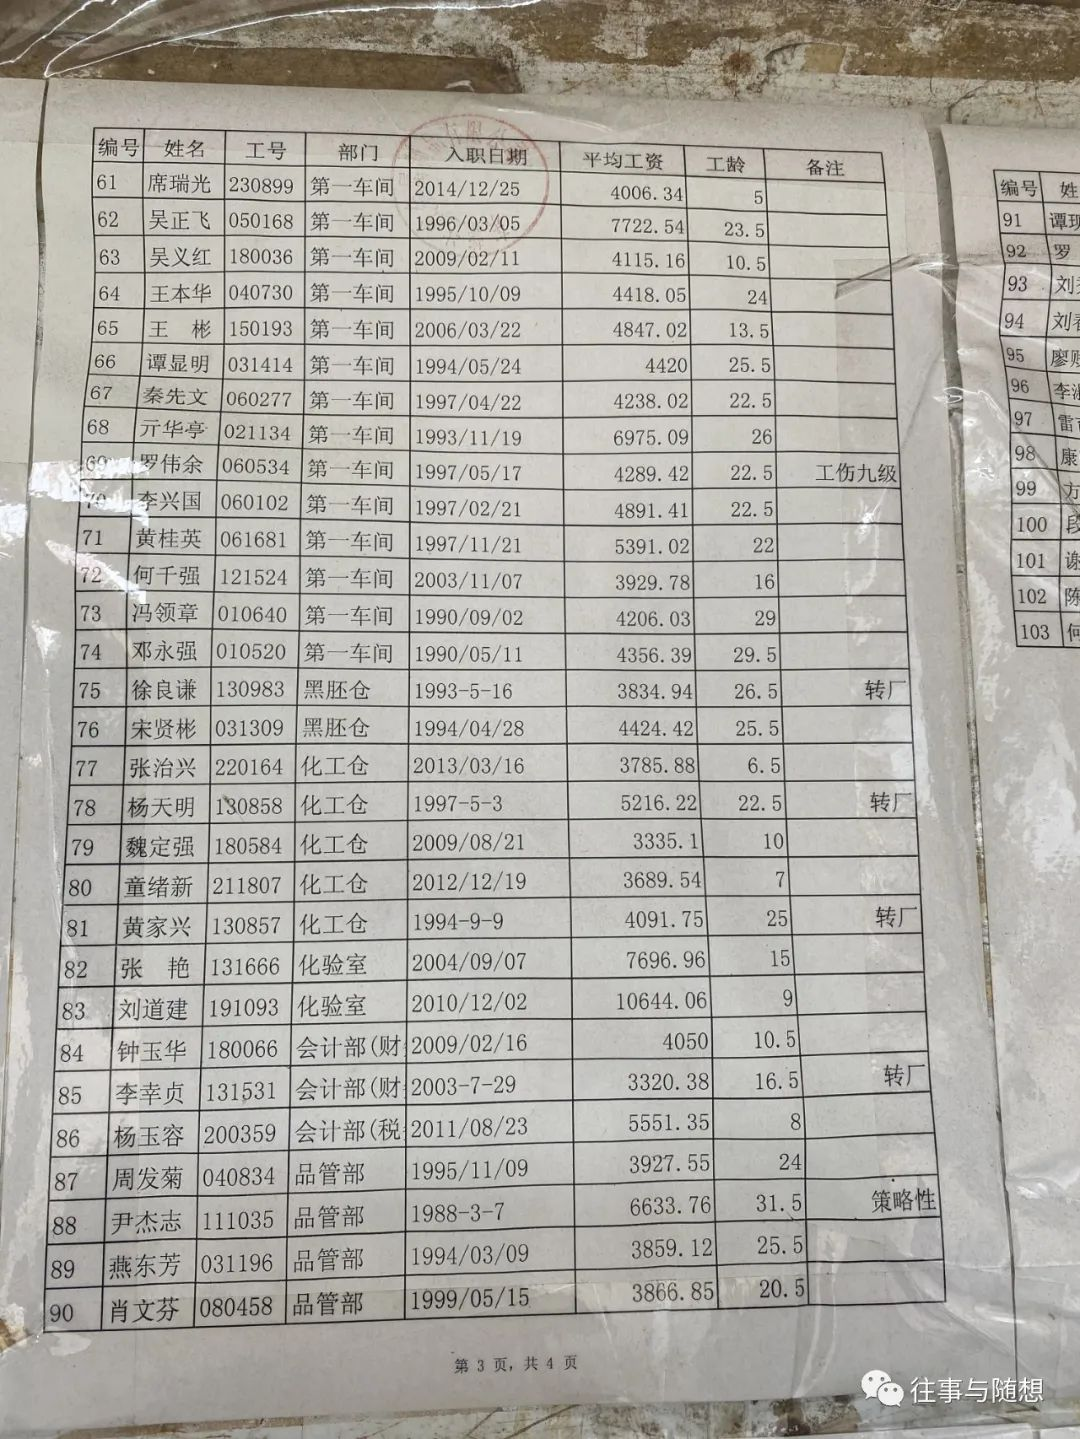 A laminated white piece of paper printed with a list of worker names, numbers, departments, hire date, average monthly salary, years of service and miscellaneous remarks.